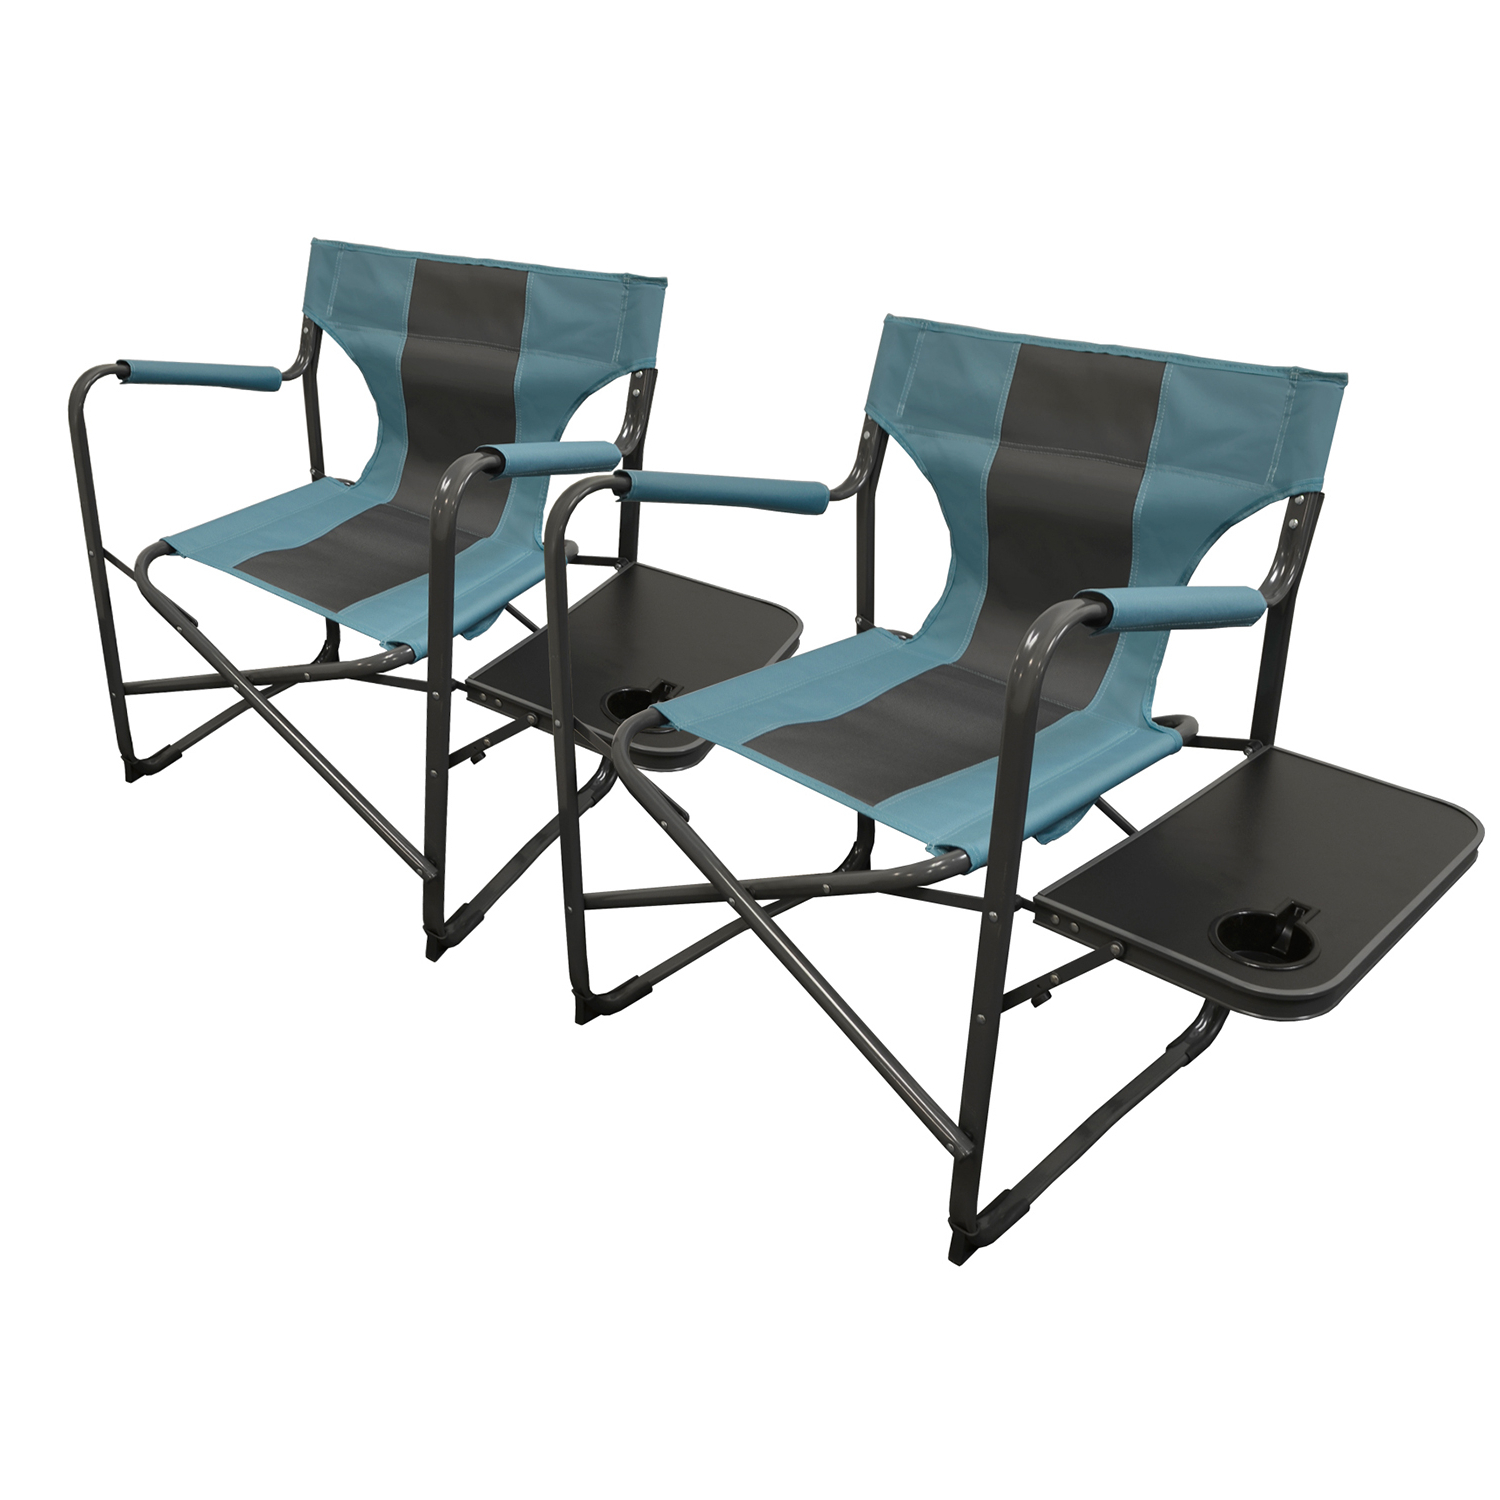 Recent Elite Director's Folding Chair, 2 Pack Intended For Caravan Sports Grey Infinity Chairs (View 20 of 25)